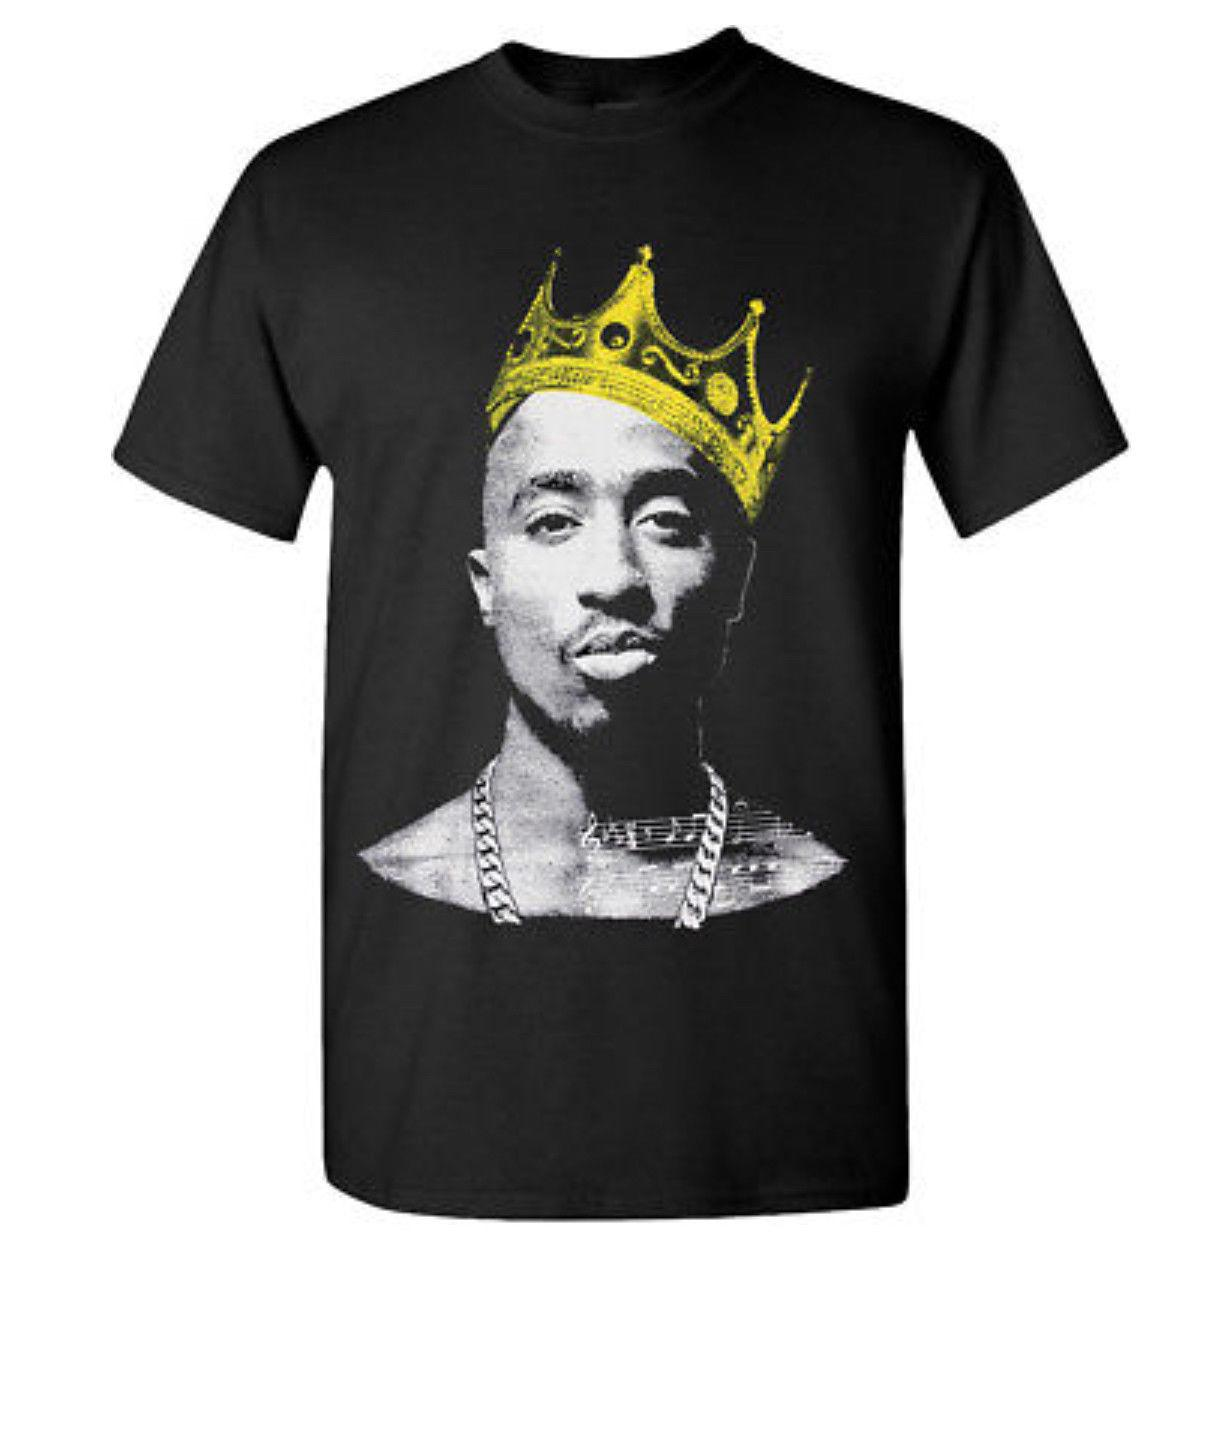 9c48f5f765 KING 2PAC Black T-Shirt Hip Hop Rapper PAC New Tee Tupac Shakur Men's T  Crown